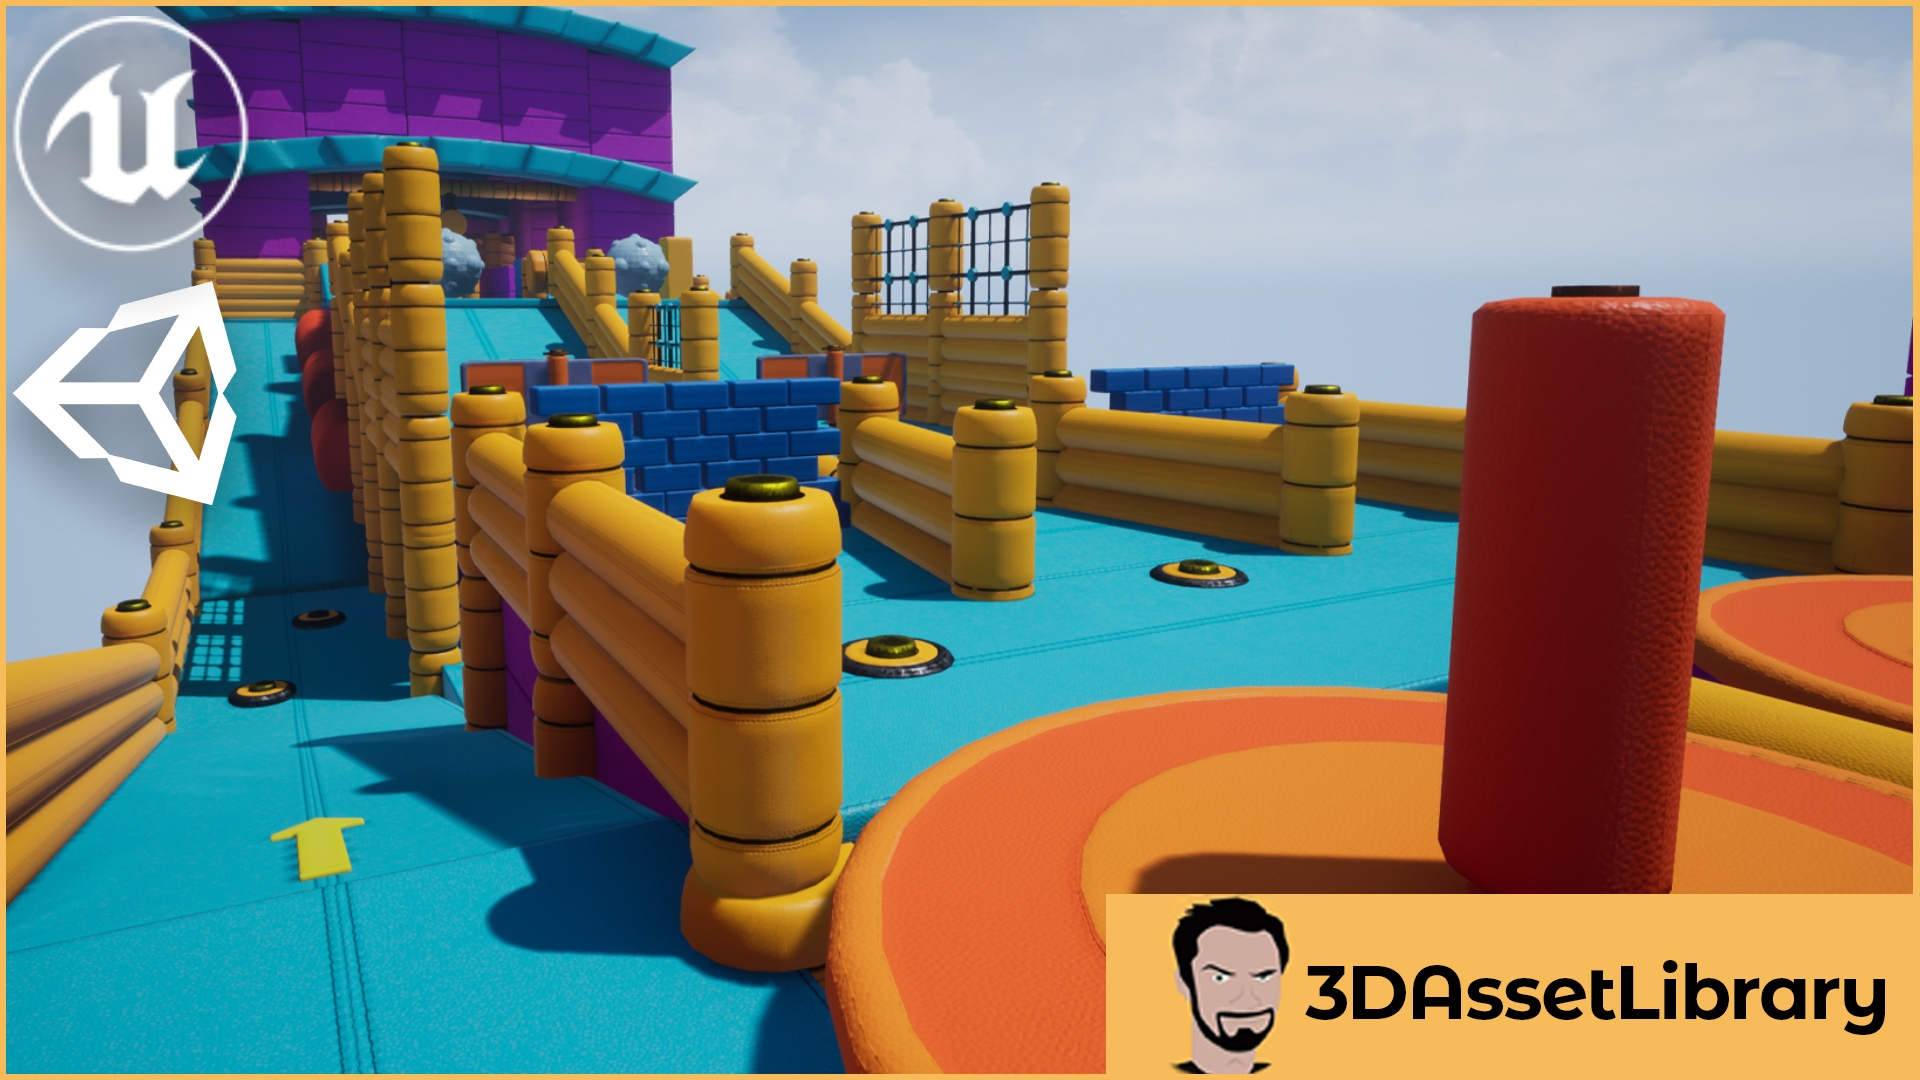 Fun Obstacle Course for Unreal and Unity